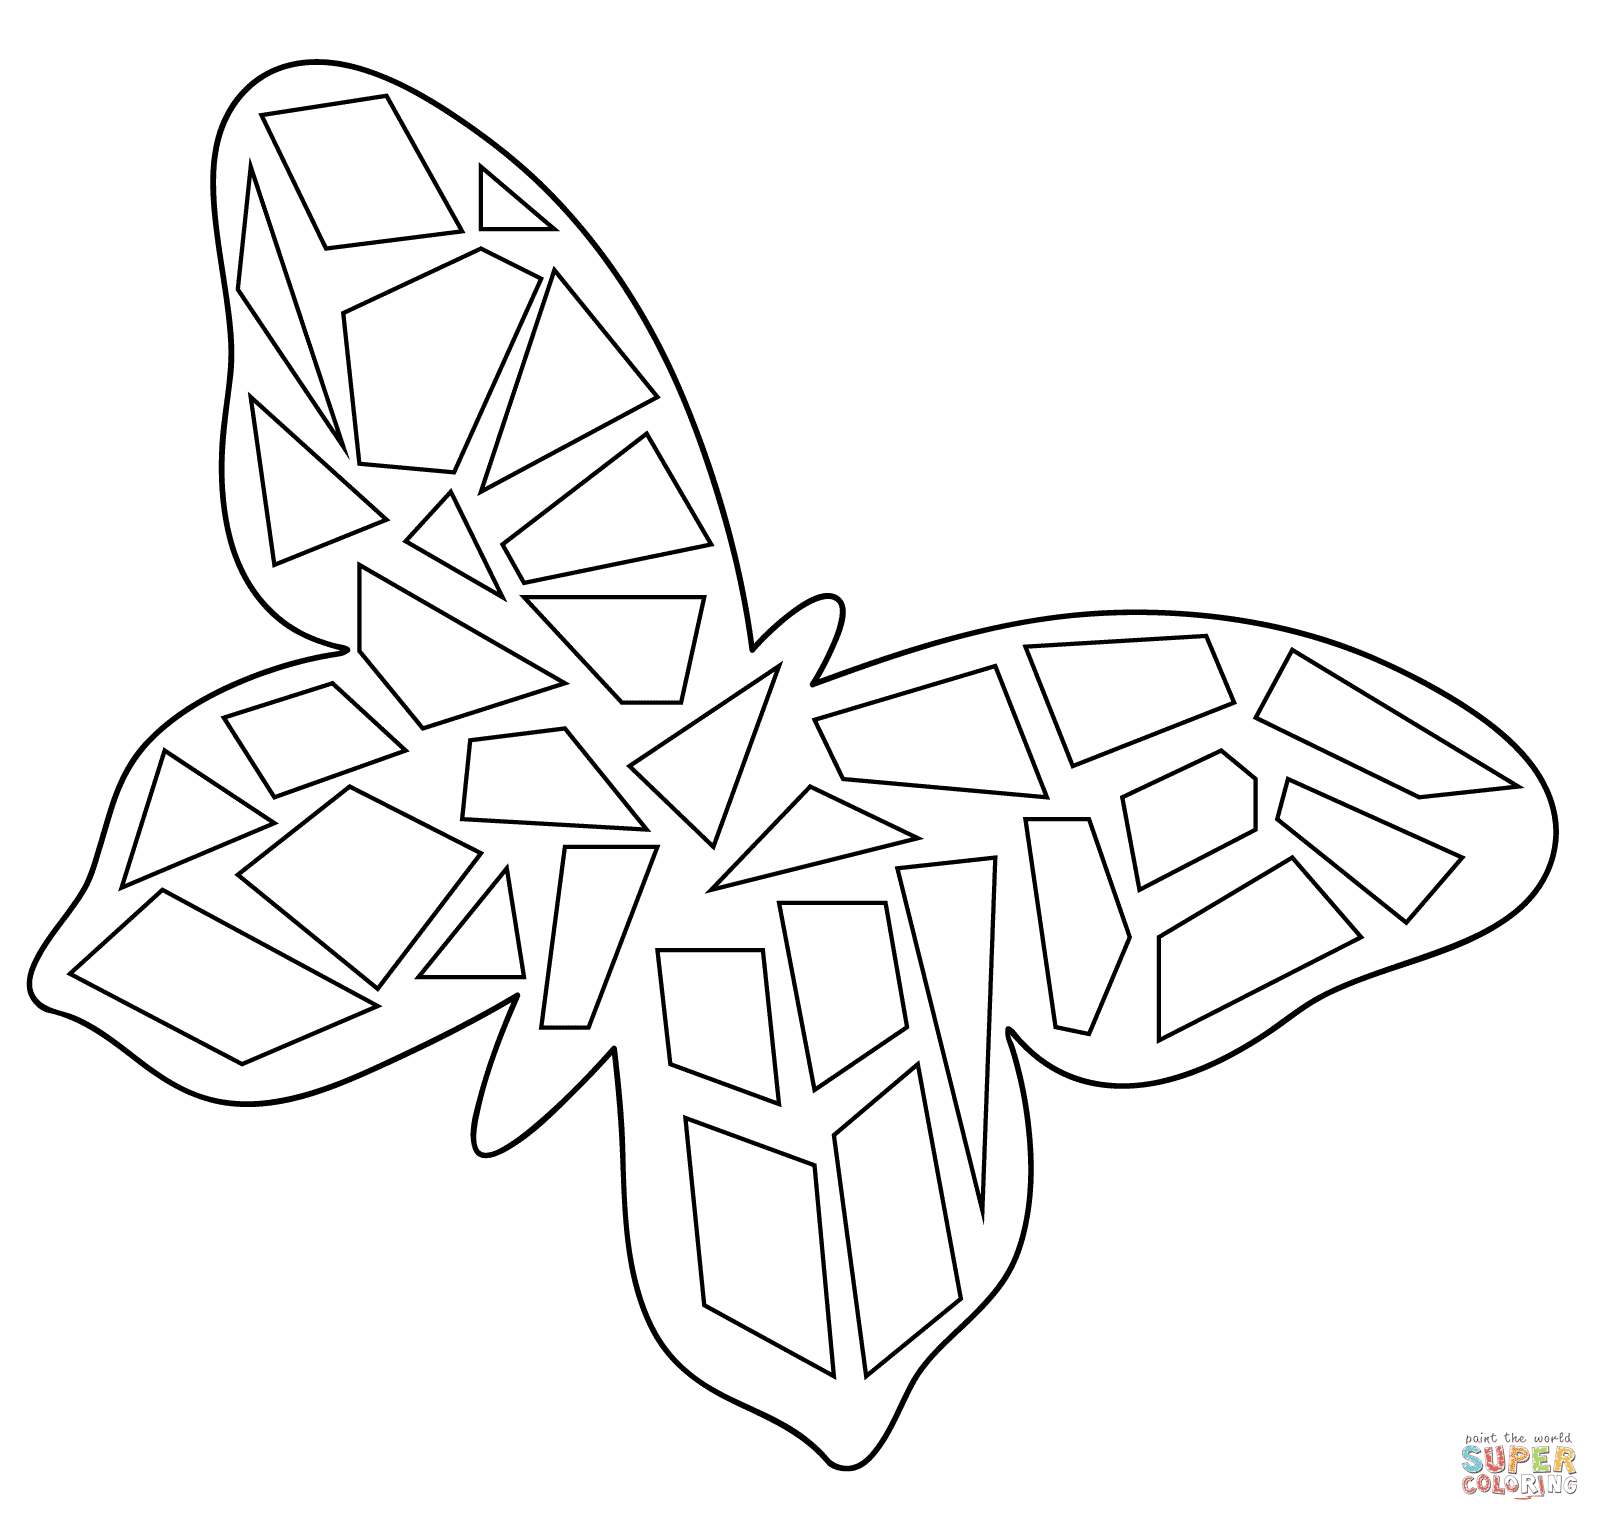 Butterfly Mosaic coloring page | Free Printable Coloring Pages